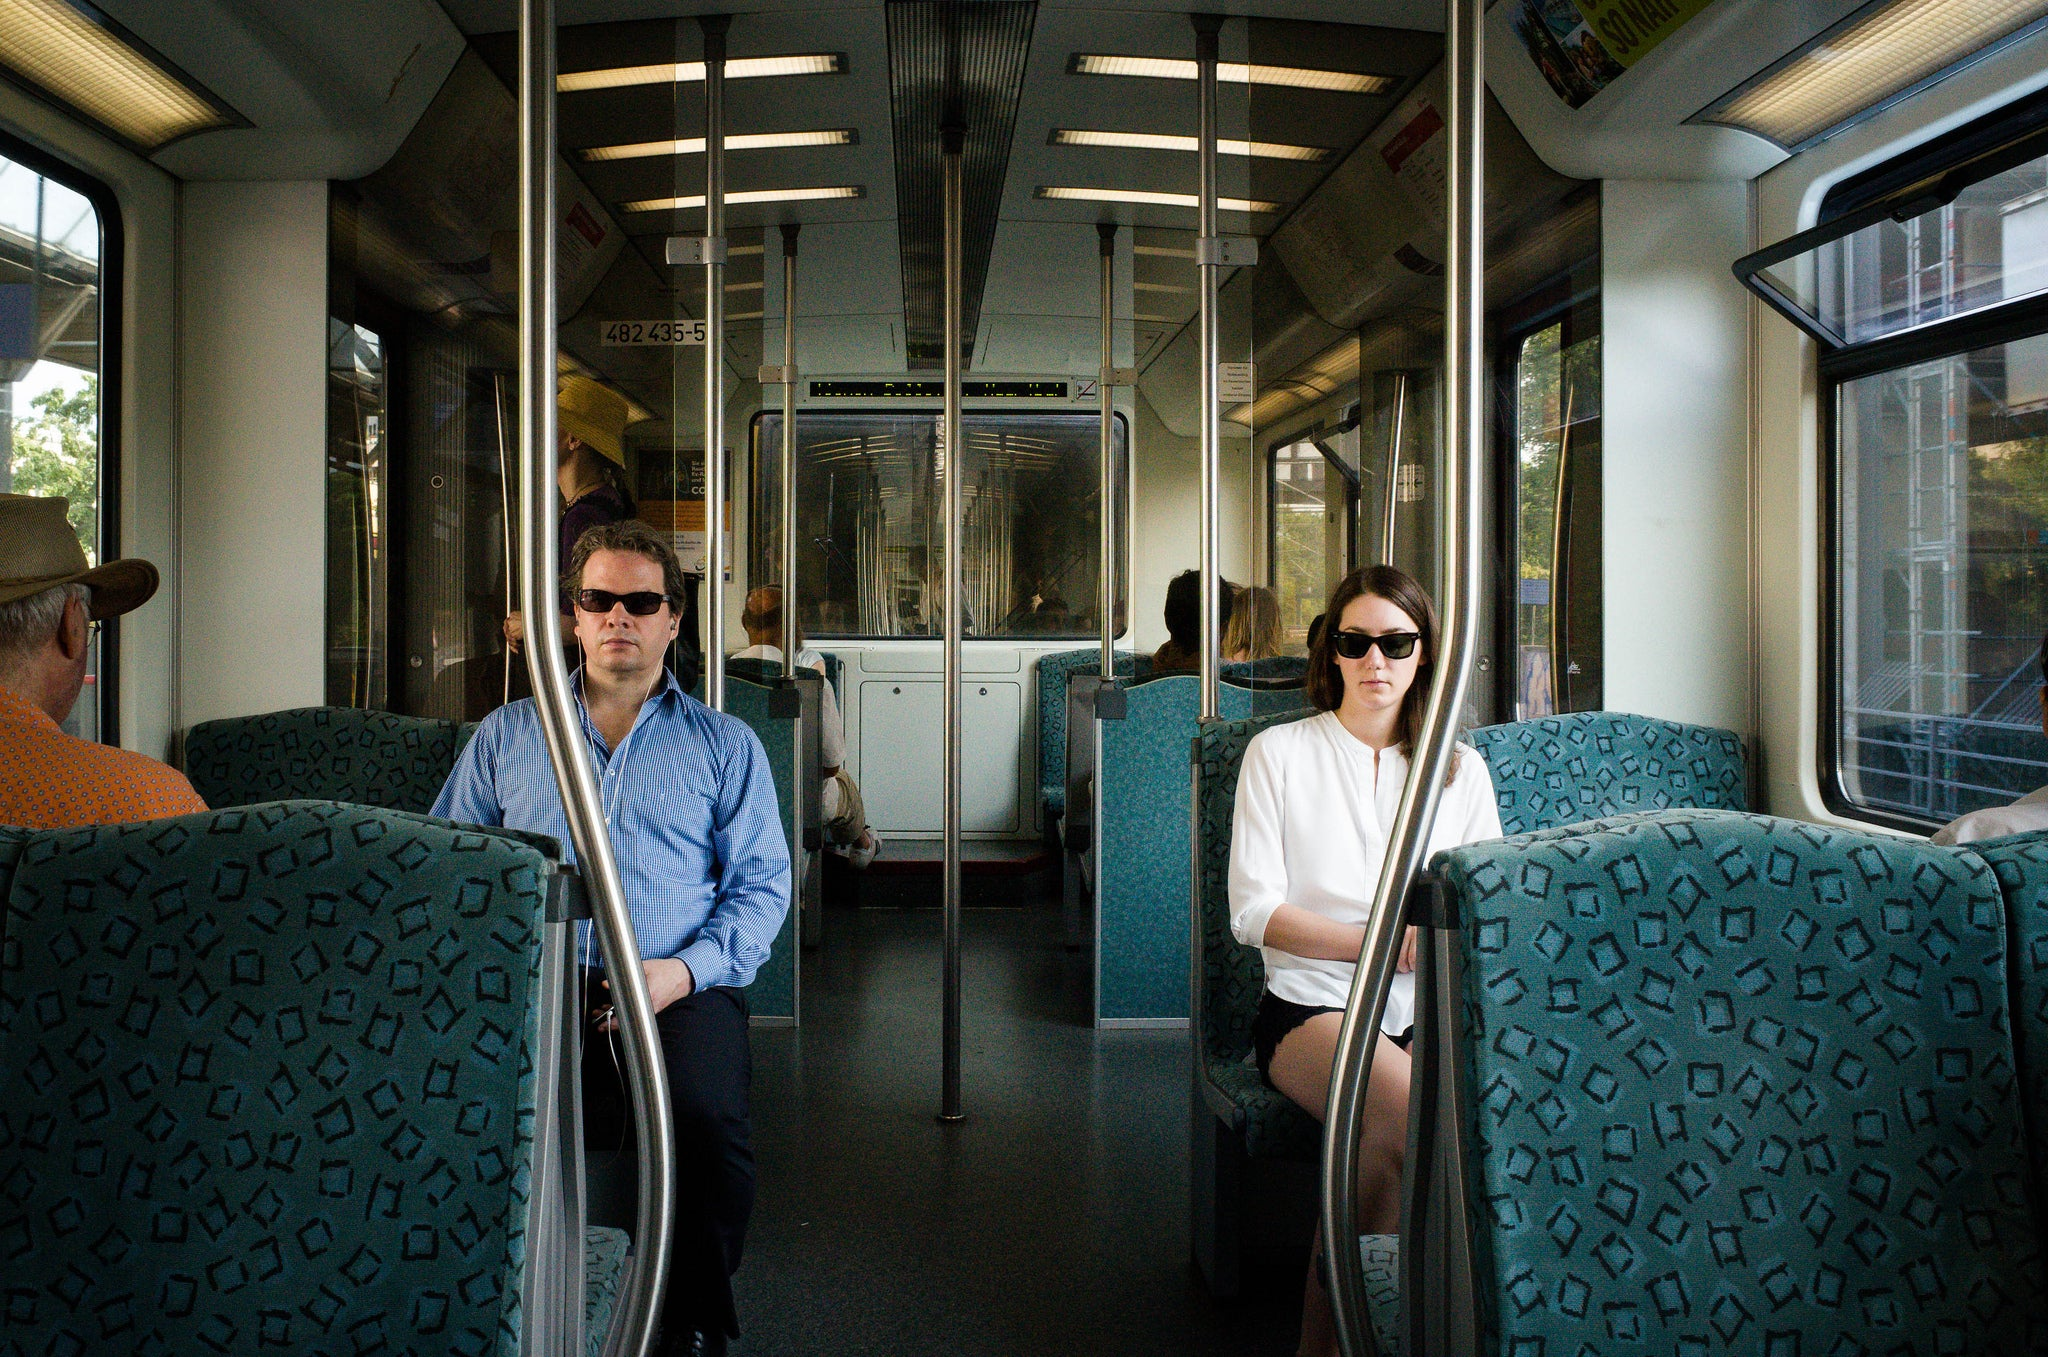 Picture of a man and a woman wearing sunglasses on public transportation.